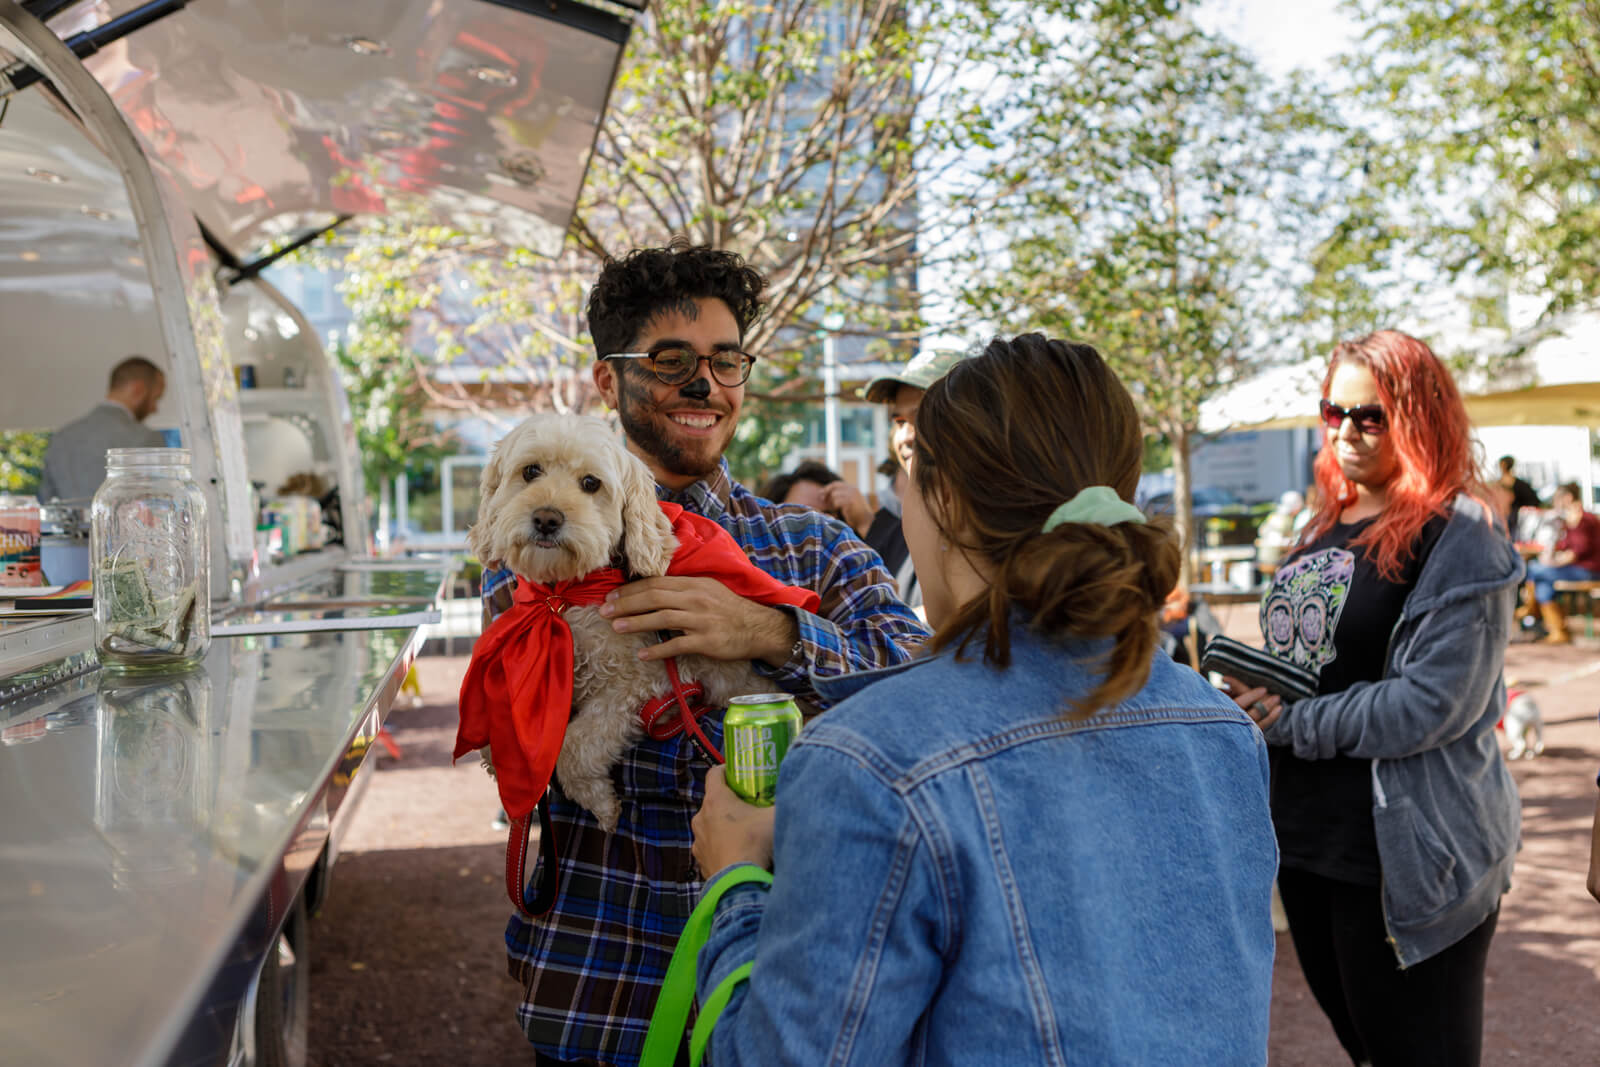 People and dog at Halloween event